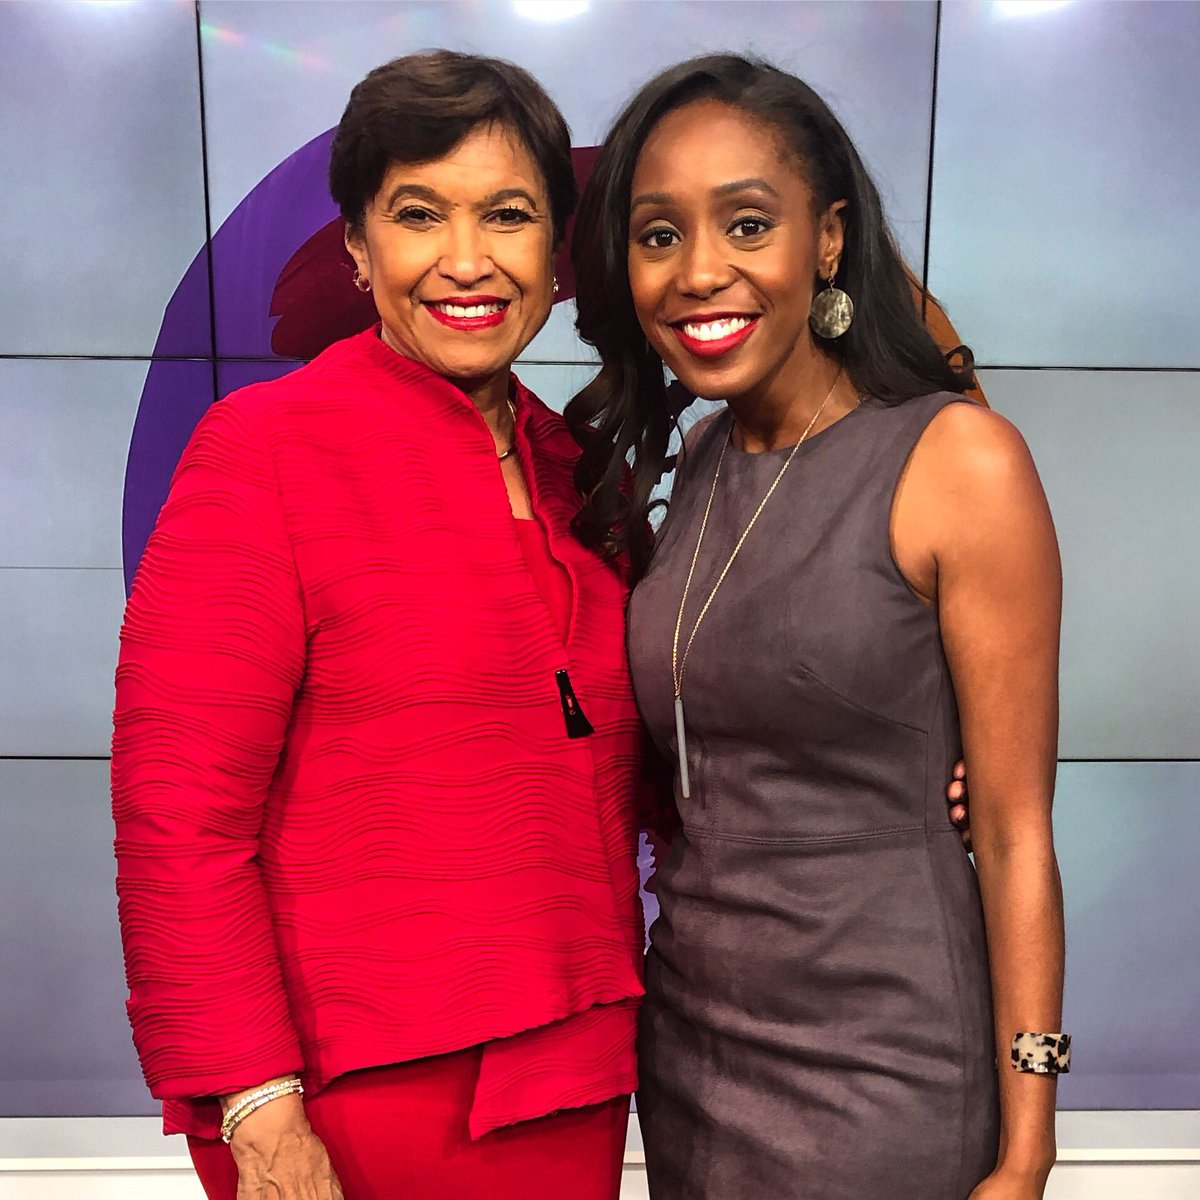 When your National President is in the building you've got to say hi! So wonderful to meet Soror Beverly Smith, National President of Delta Sigma Theta Sorority, Inc! She stopped by our studios for an appearance on @sistercircletv! Watch at 12pm on TVOne! @dstinc1913 #DST1913 ❤️